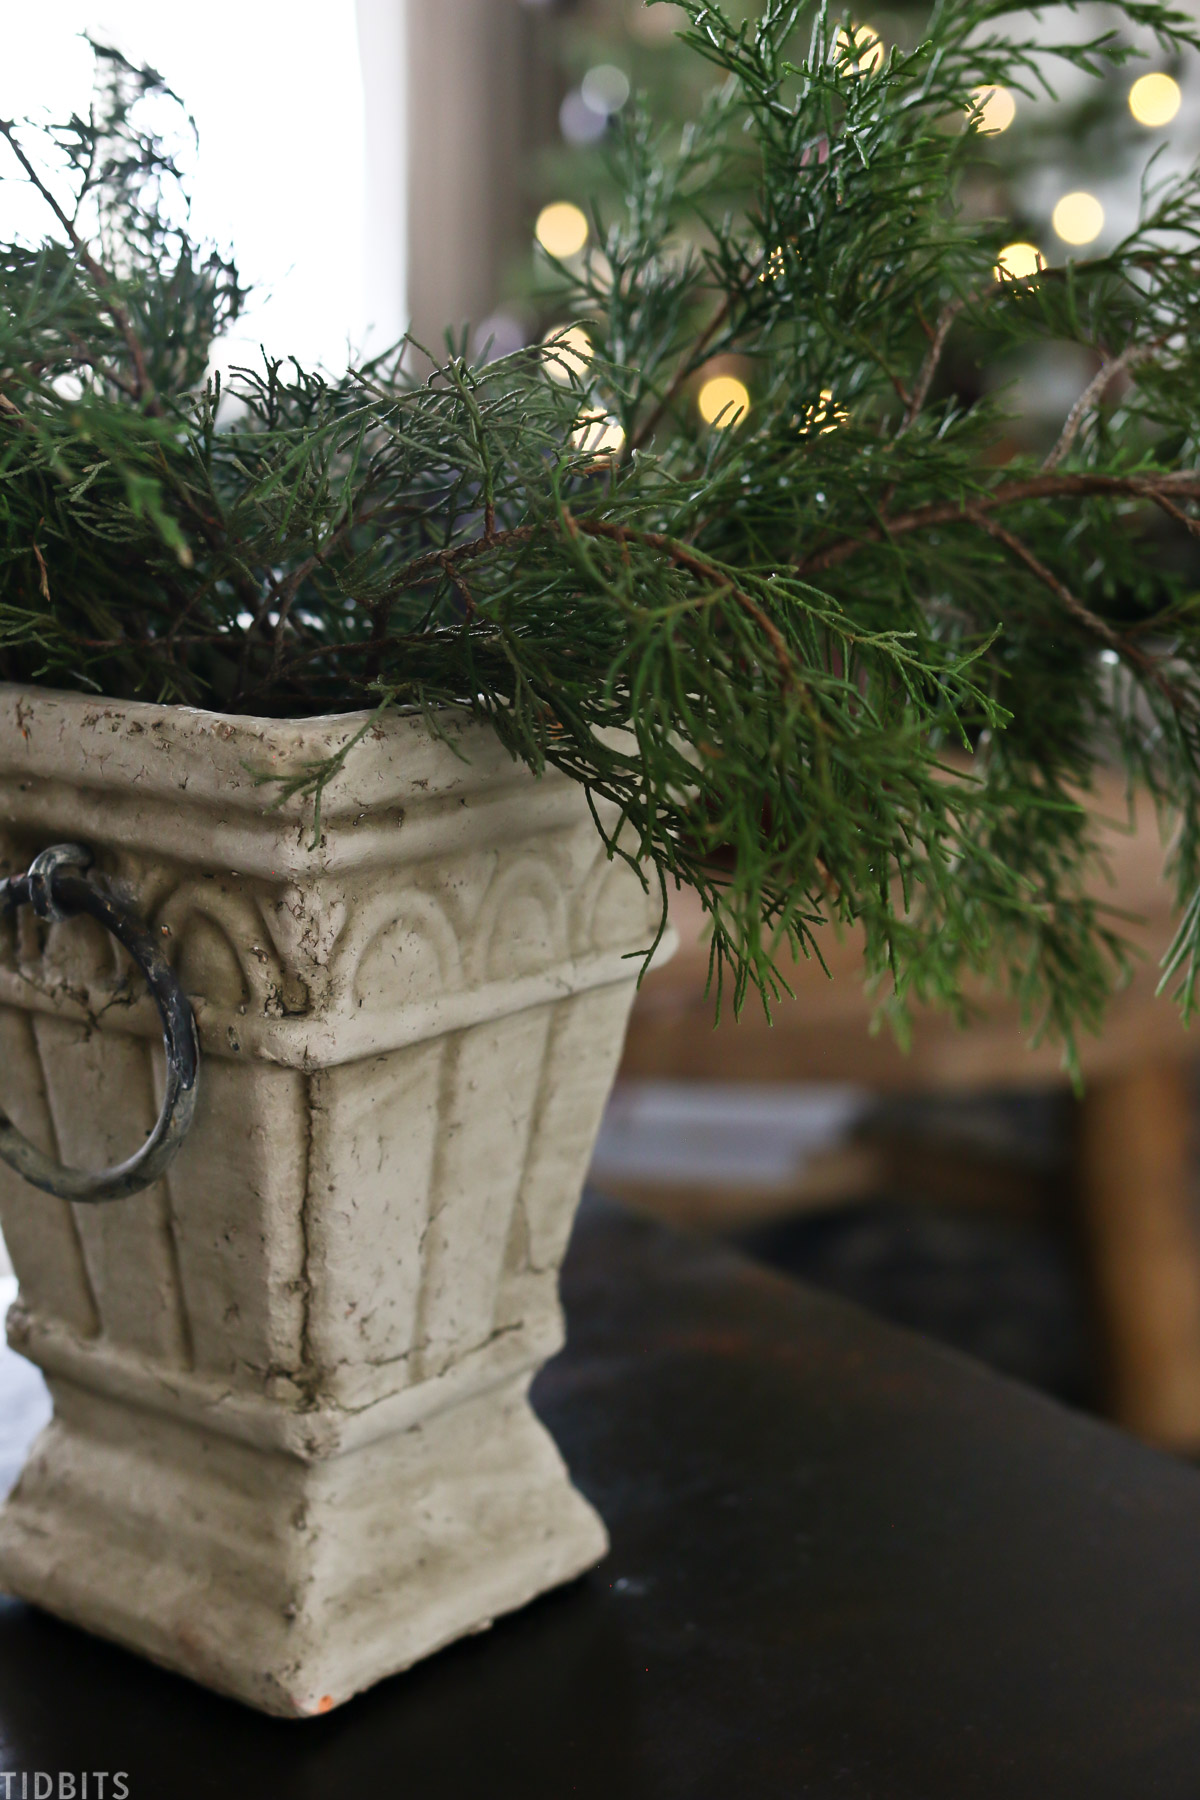 centerpiece vase with tree branches hanging out of it resembling a Christmas tree